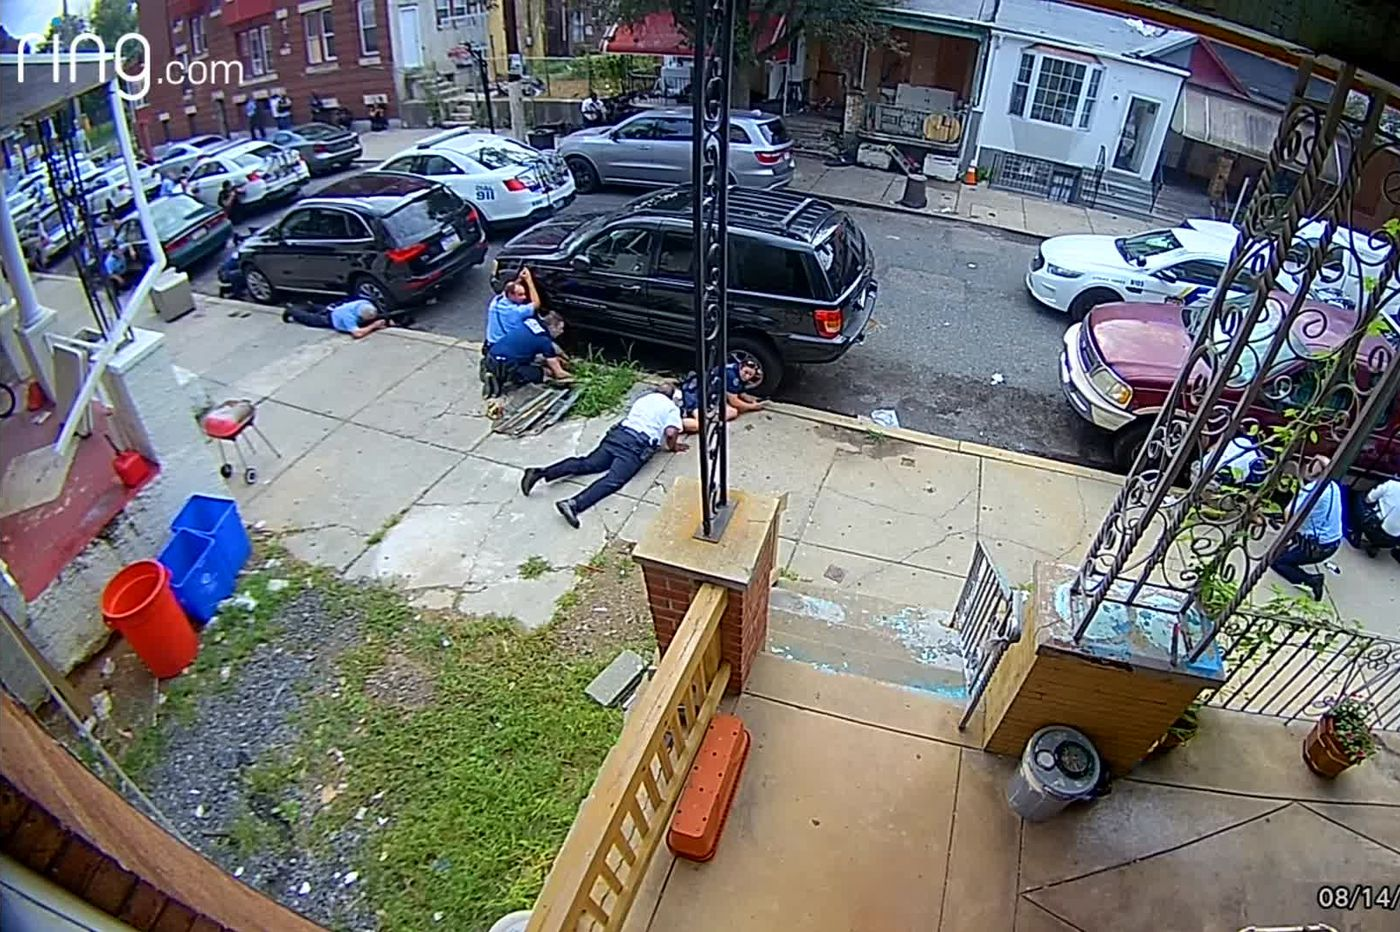 EXCLUSIVE VIDEO: From across the street, a clear view of Philadelphia police, gunman trading fire